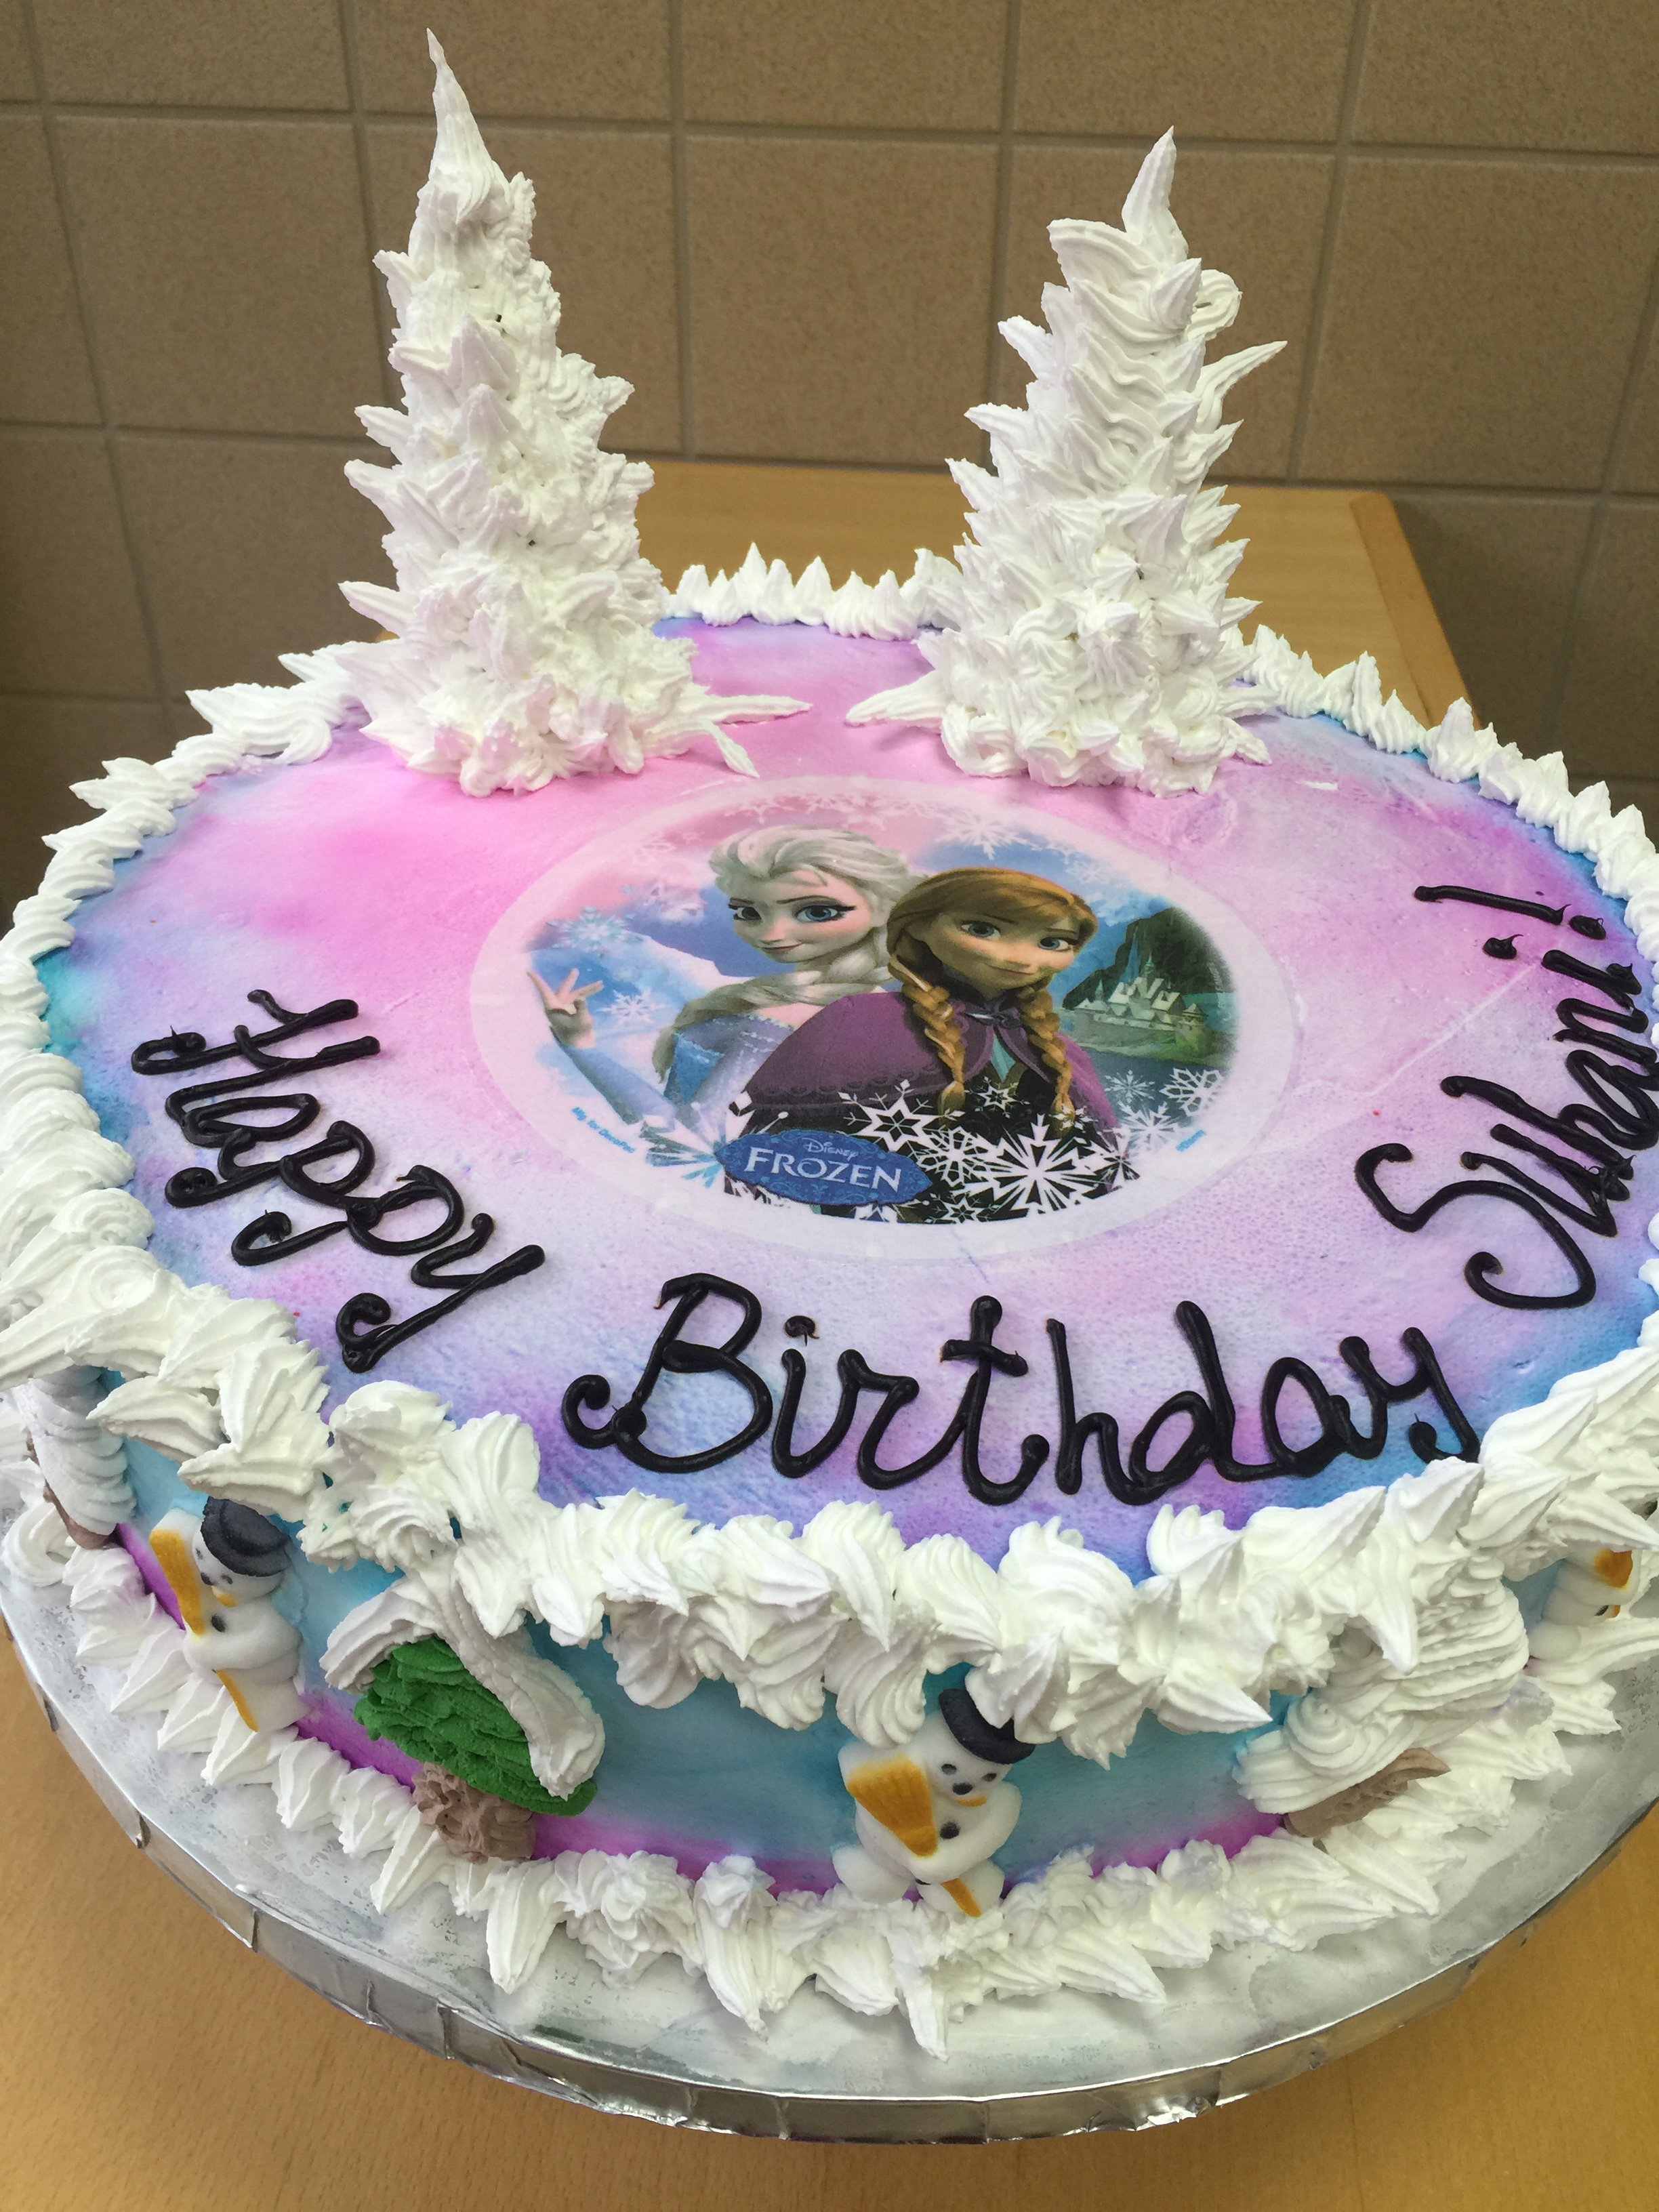 Birthday Cakes For 8 Years Old Girl Disneys Frozen Themed Cake Wild Berries Bakery And Cafe